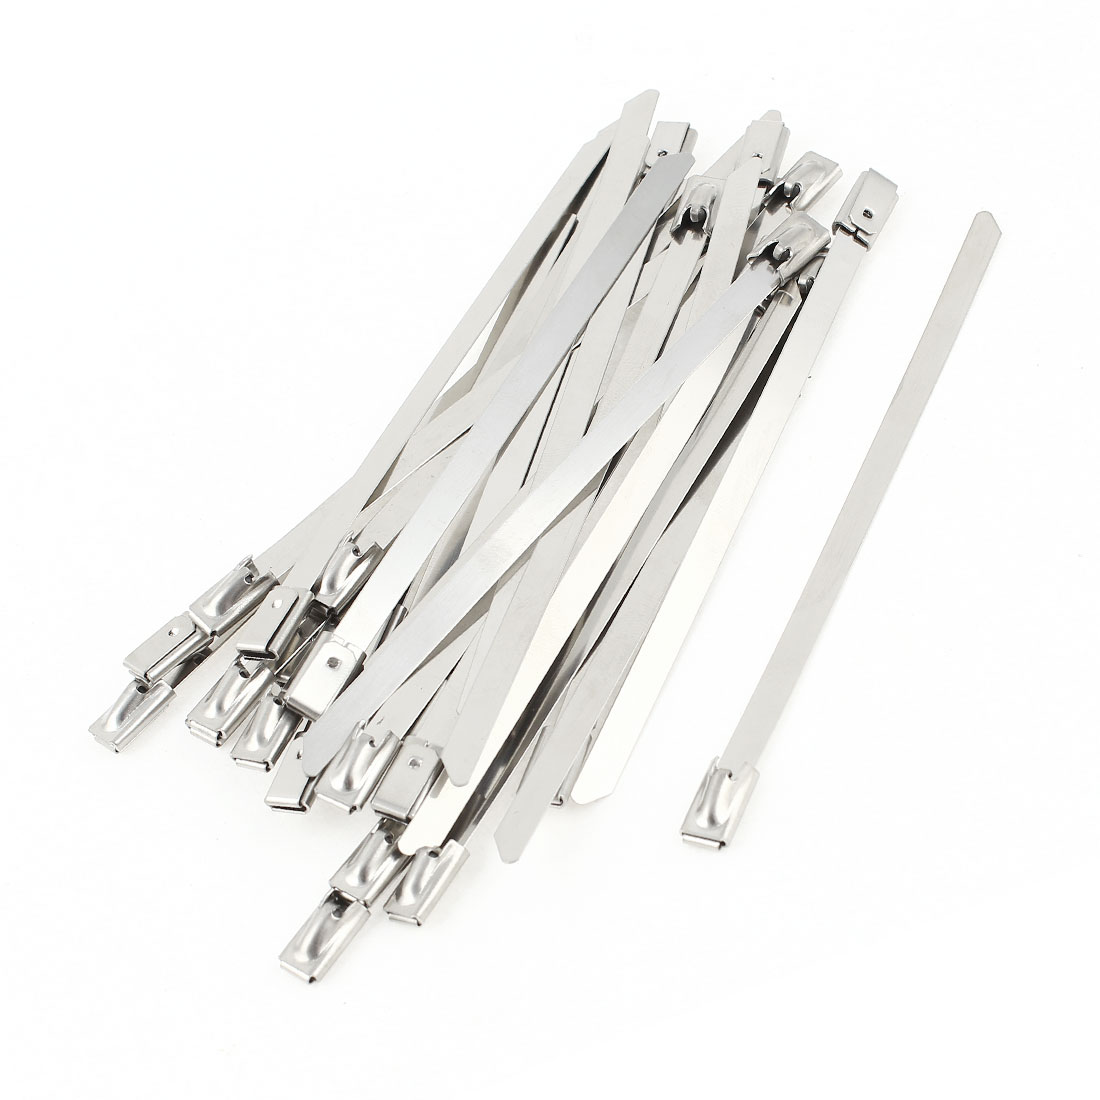 30pcs Stainless Steel Zip Cable Ties 4.6mmx100mm for Exhaust Header